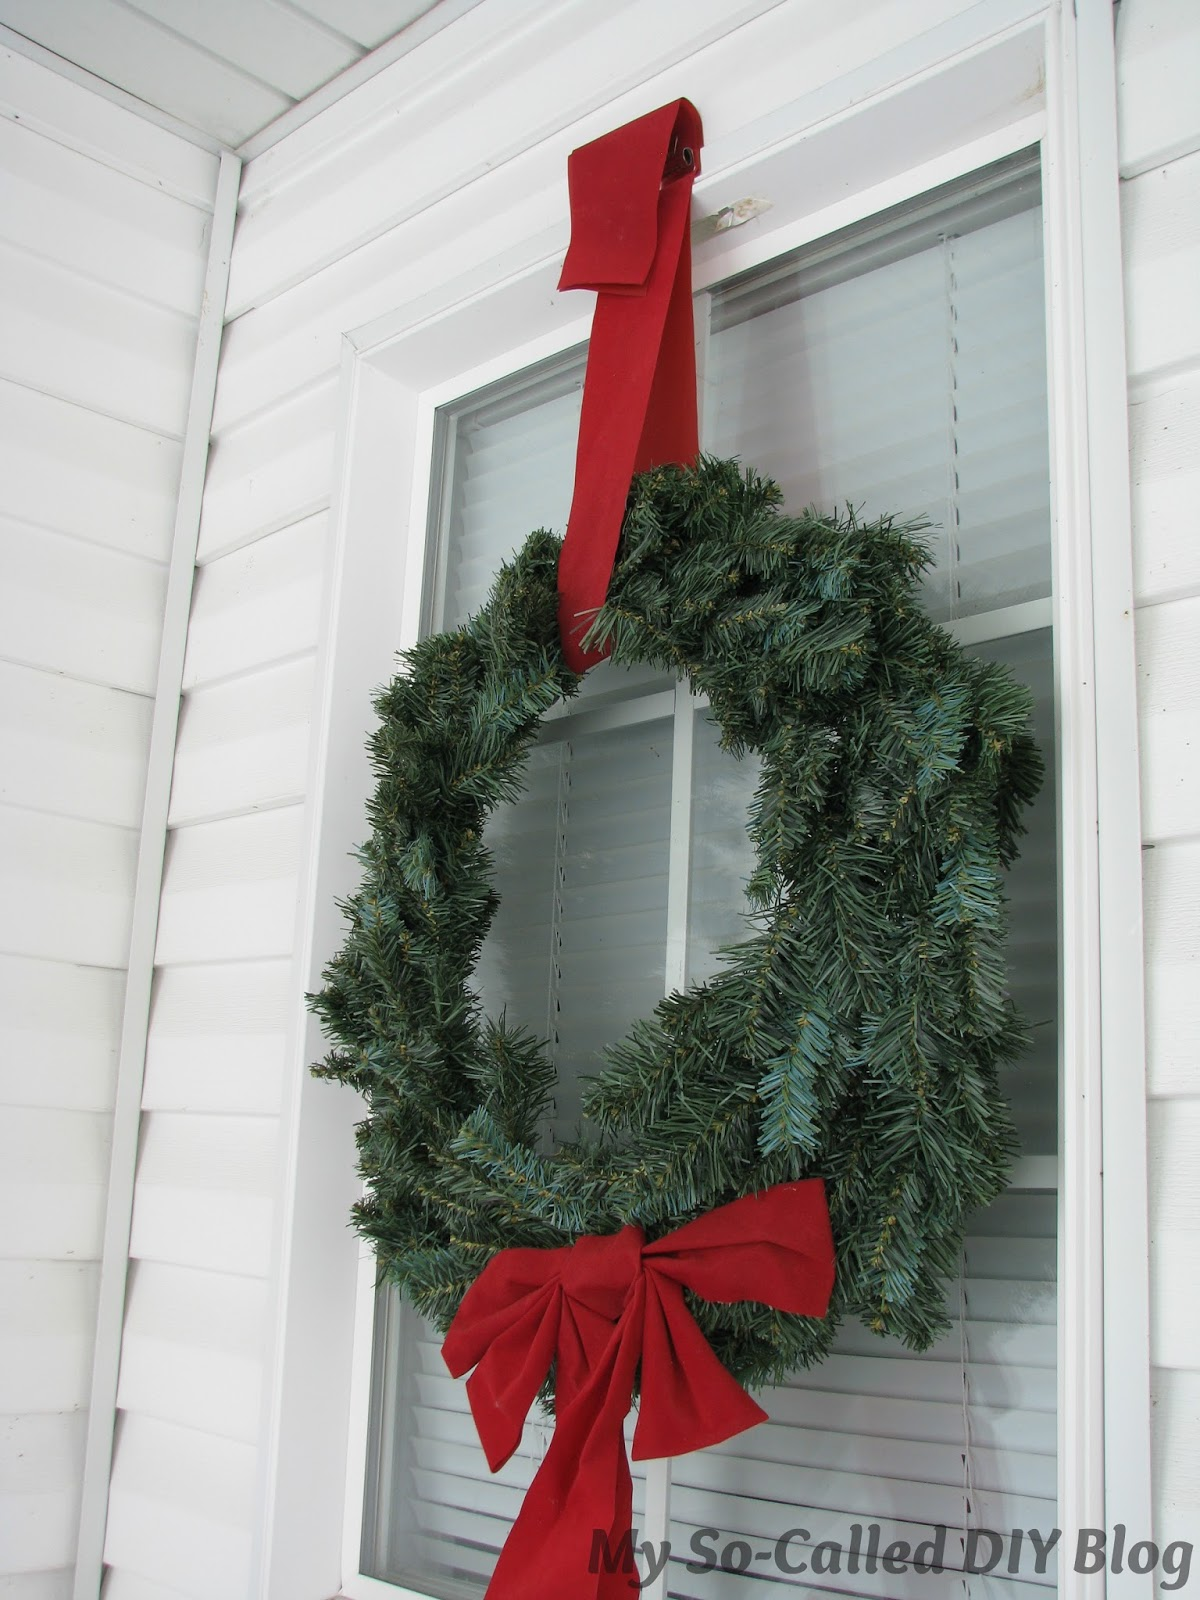 My So Called Diy Blog Hanging Wreaths From Metal Frame